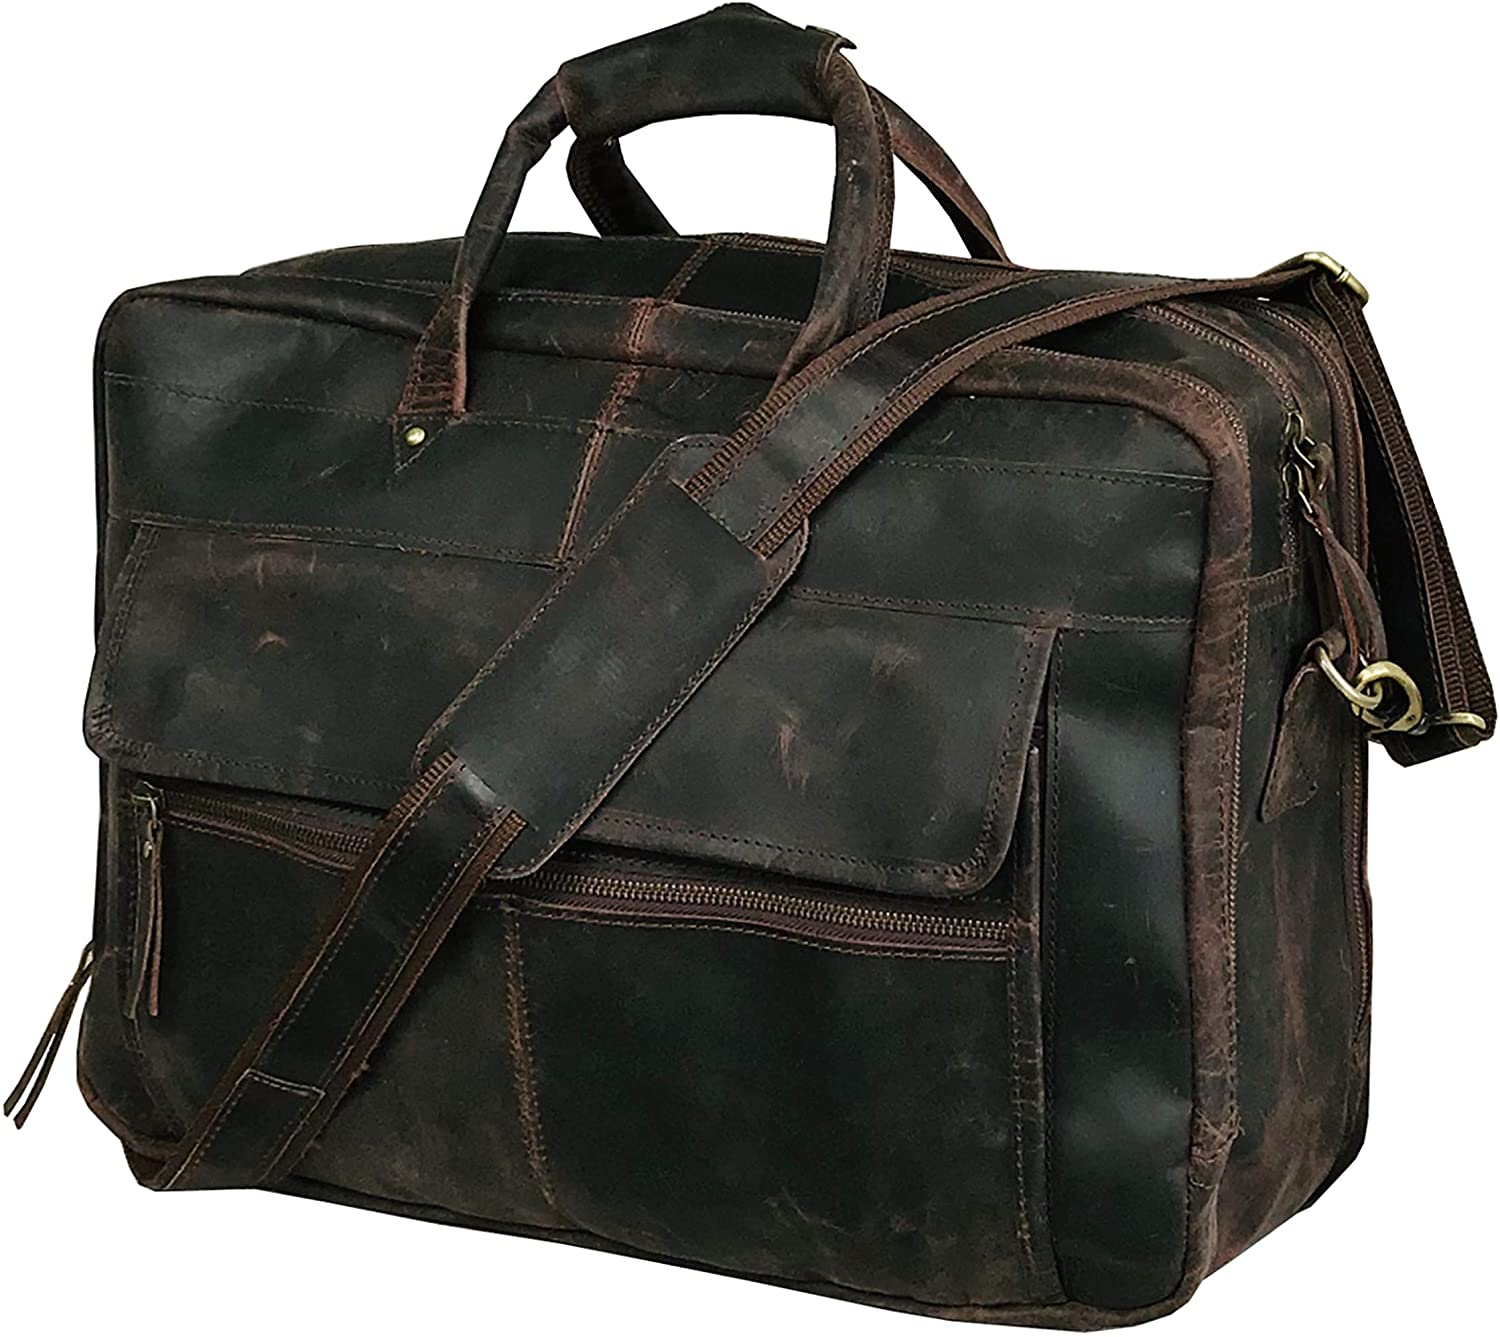 Leather Briefcase for Men Business Travel Messenger Bags 19 Inch Laptop Bag